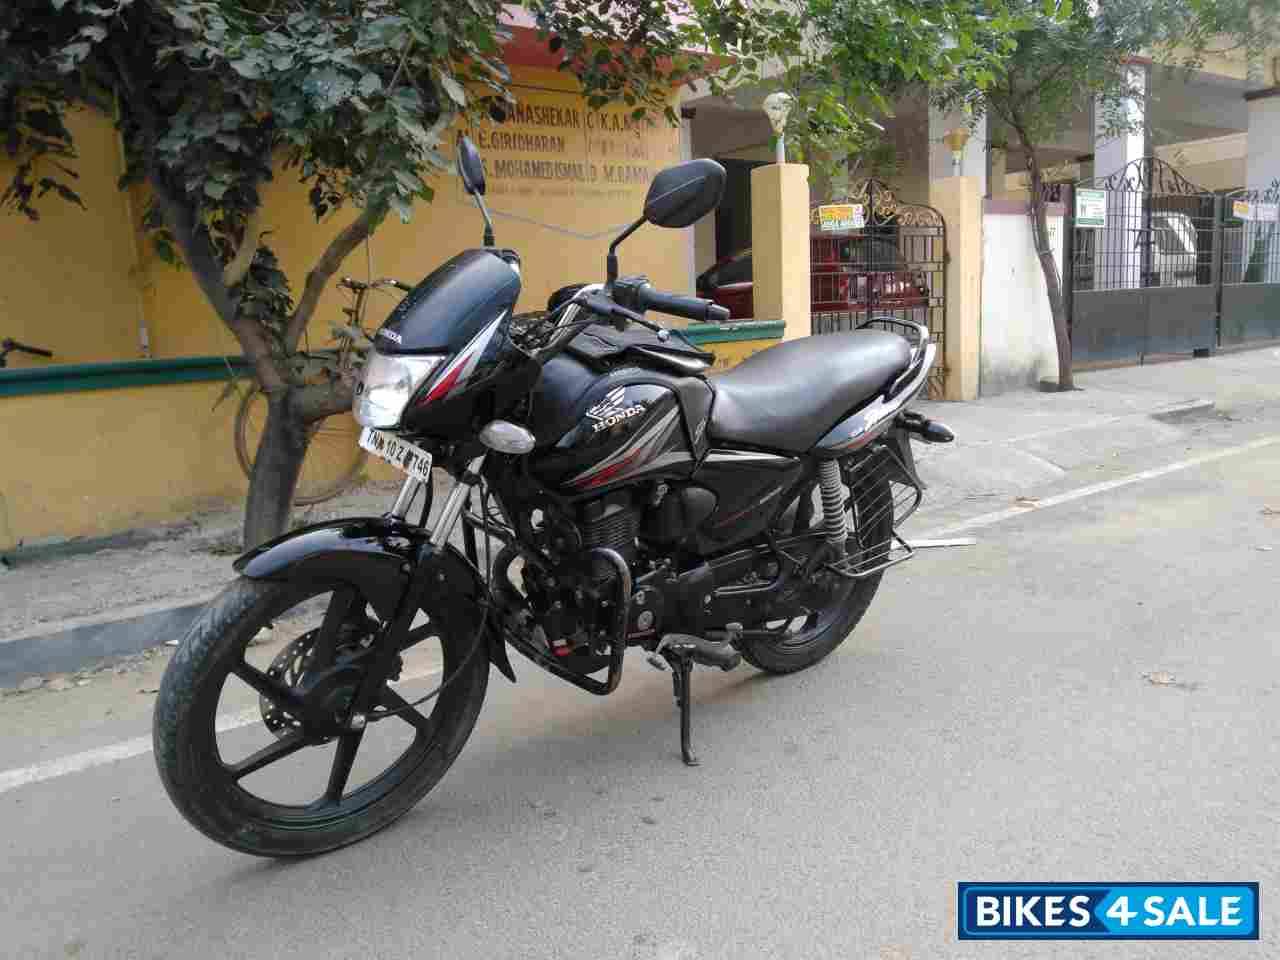 Black Red Honda Shine For Sale In Chennai This Bike Is A